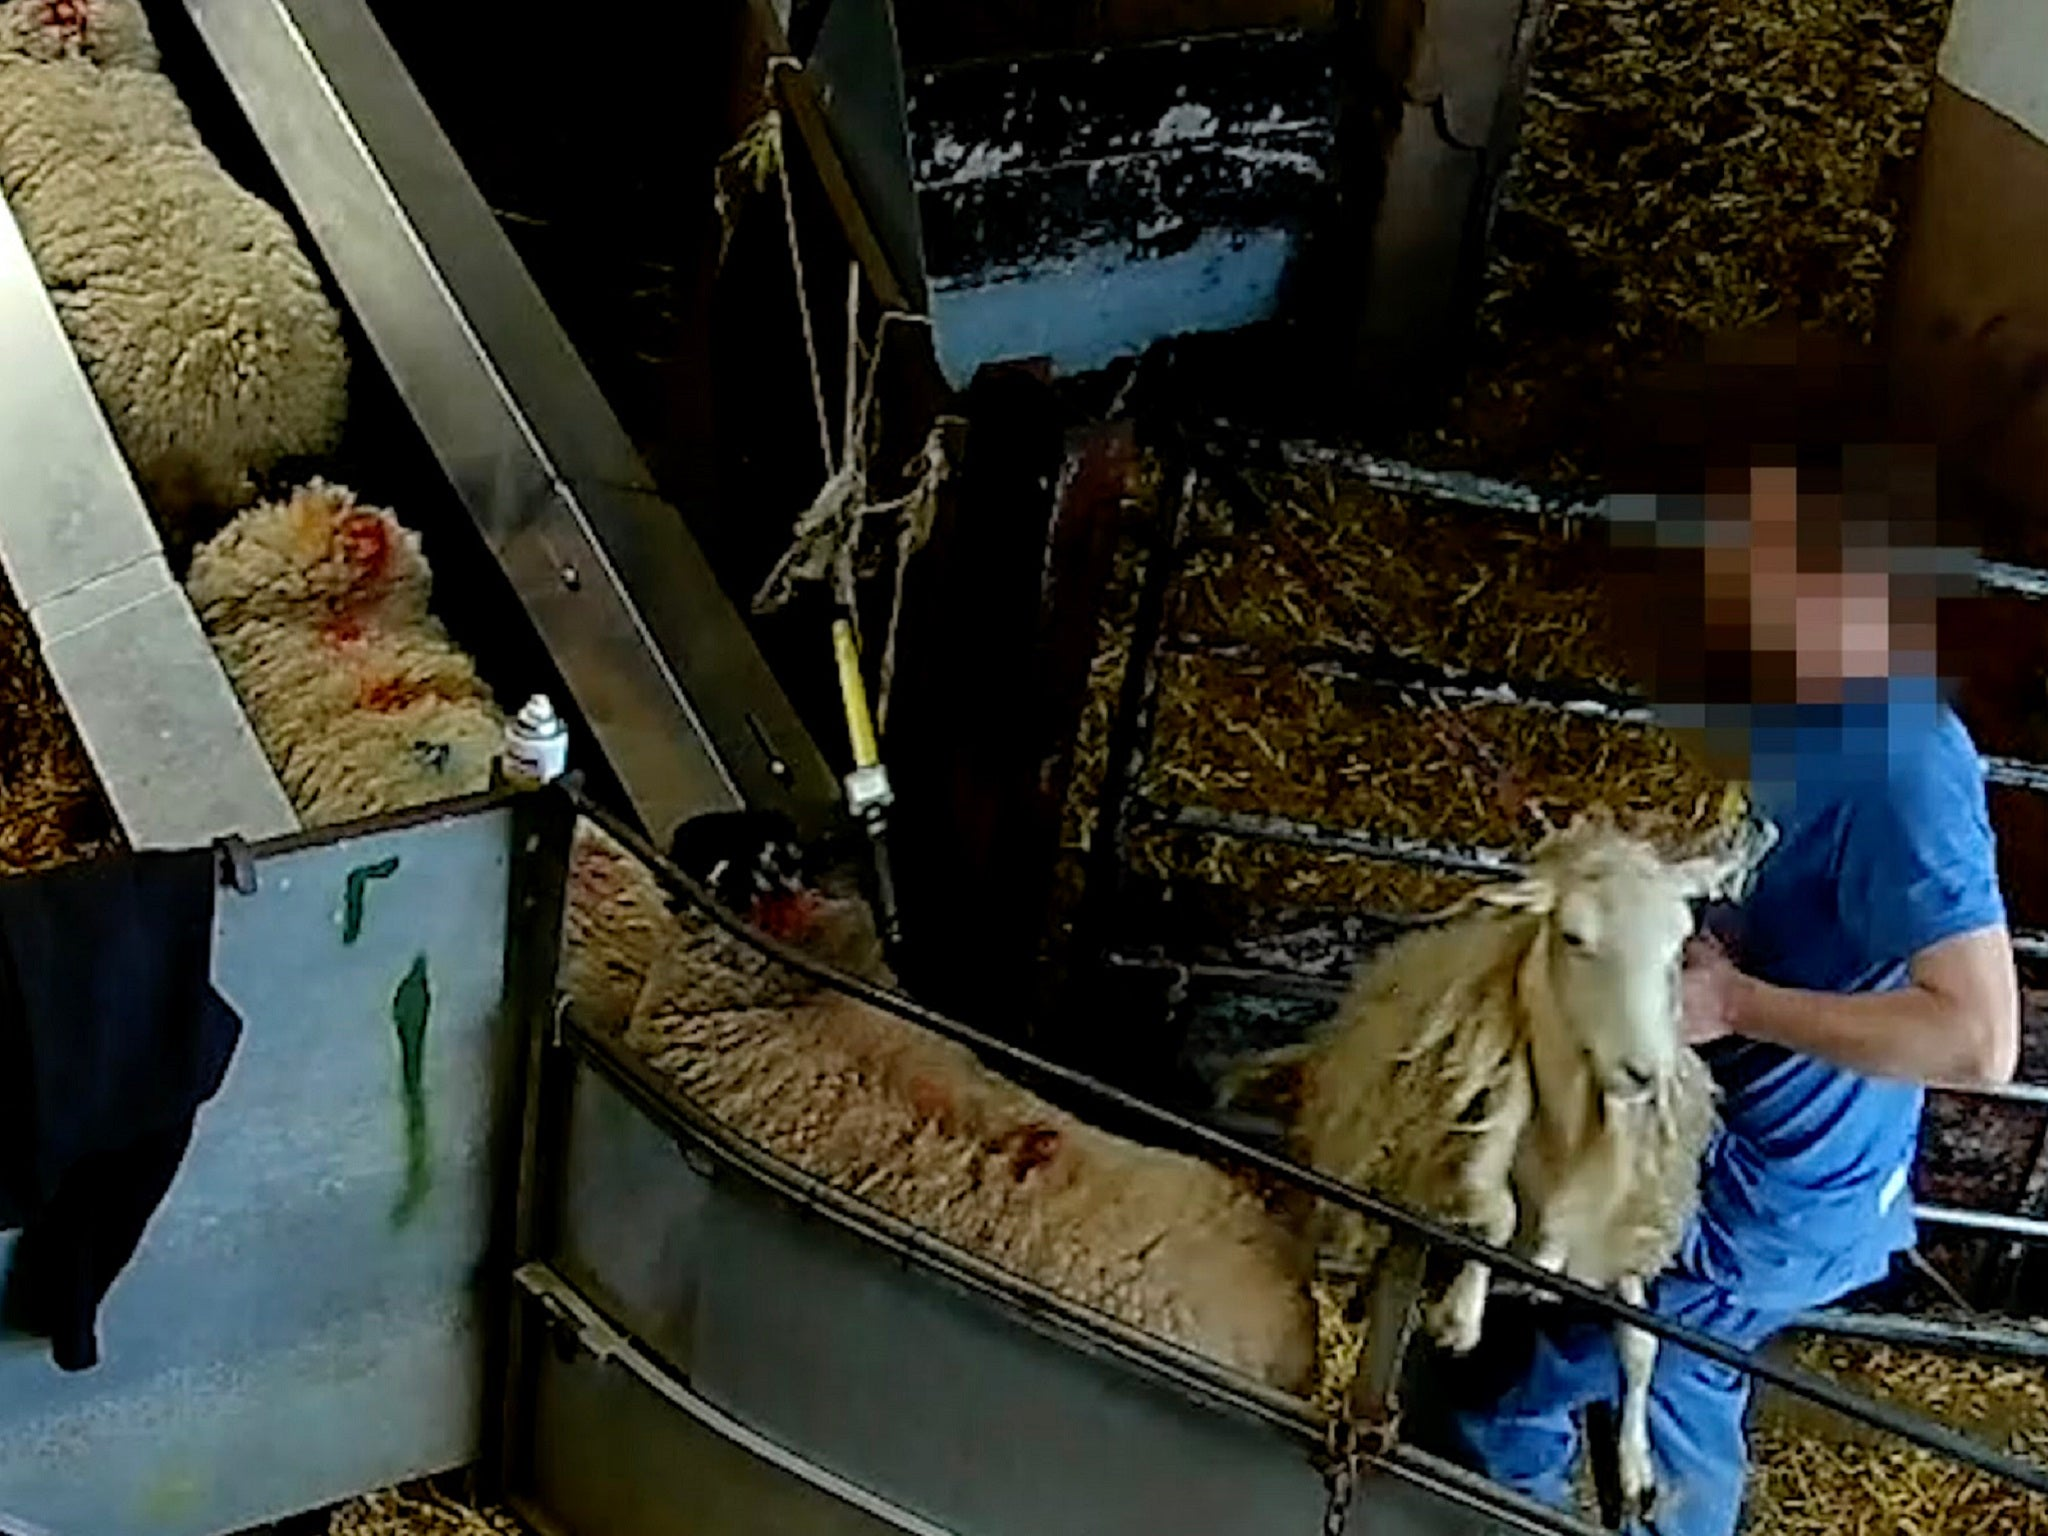 Covert footage shows 'horrendous cruelty' towards sheep at